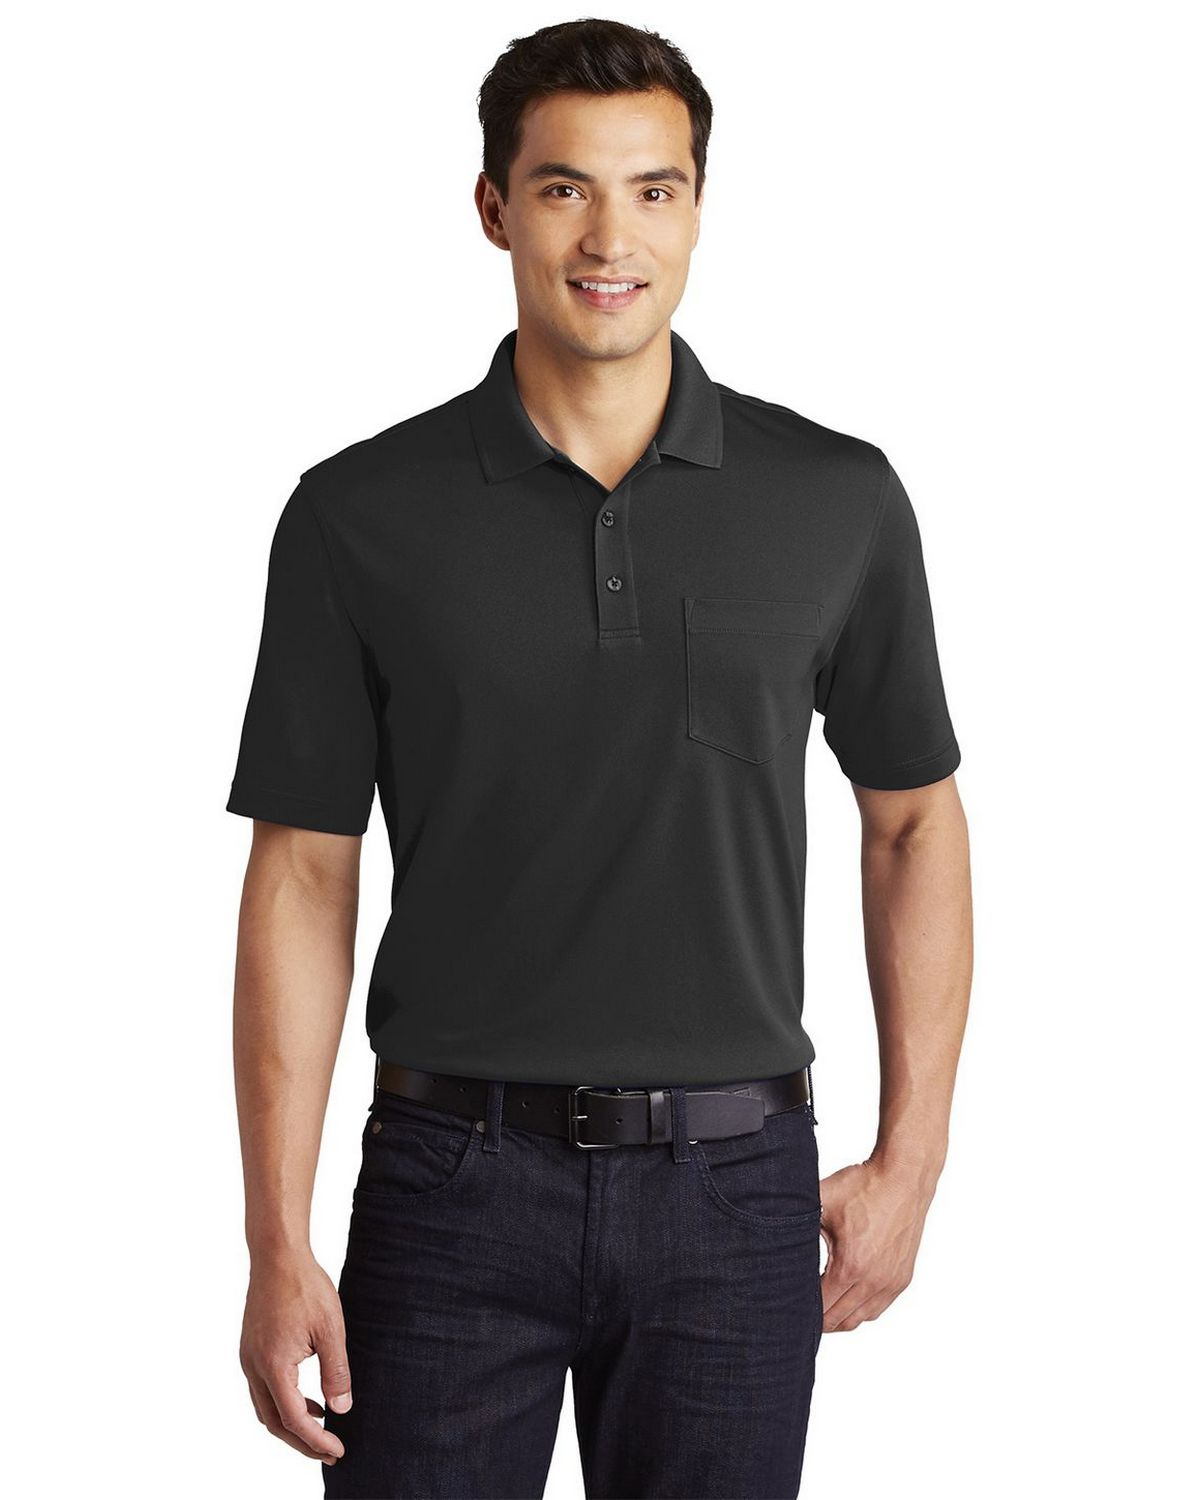 Port Authority K110P Mens Dry Zone UV Micro-Mesh Pocket Polo Shirt